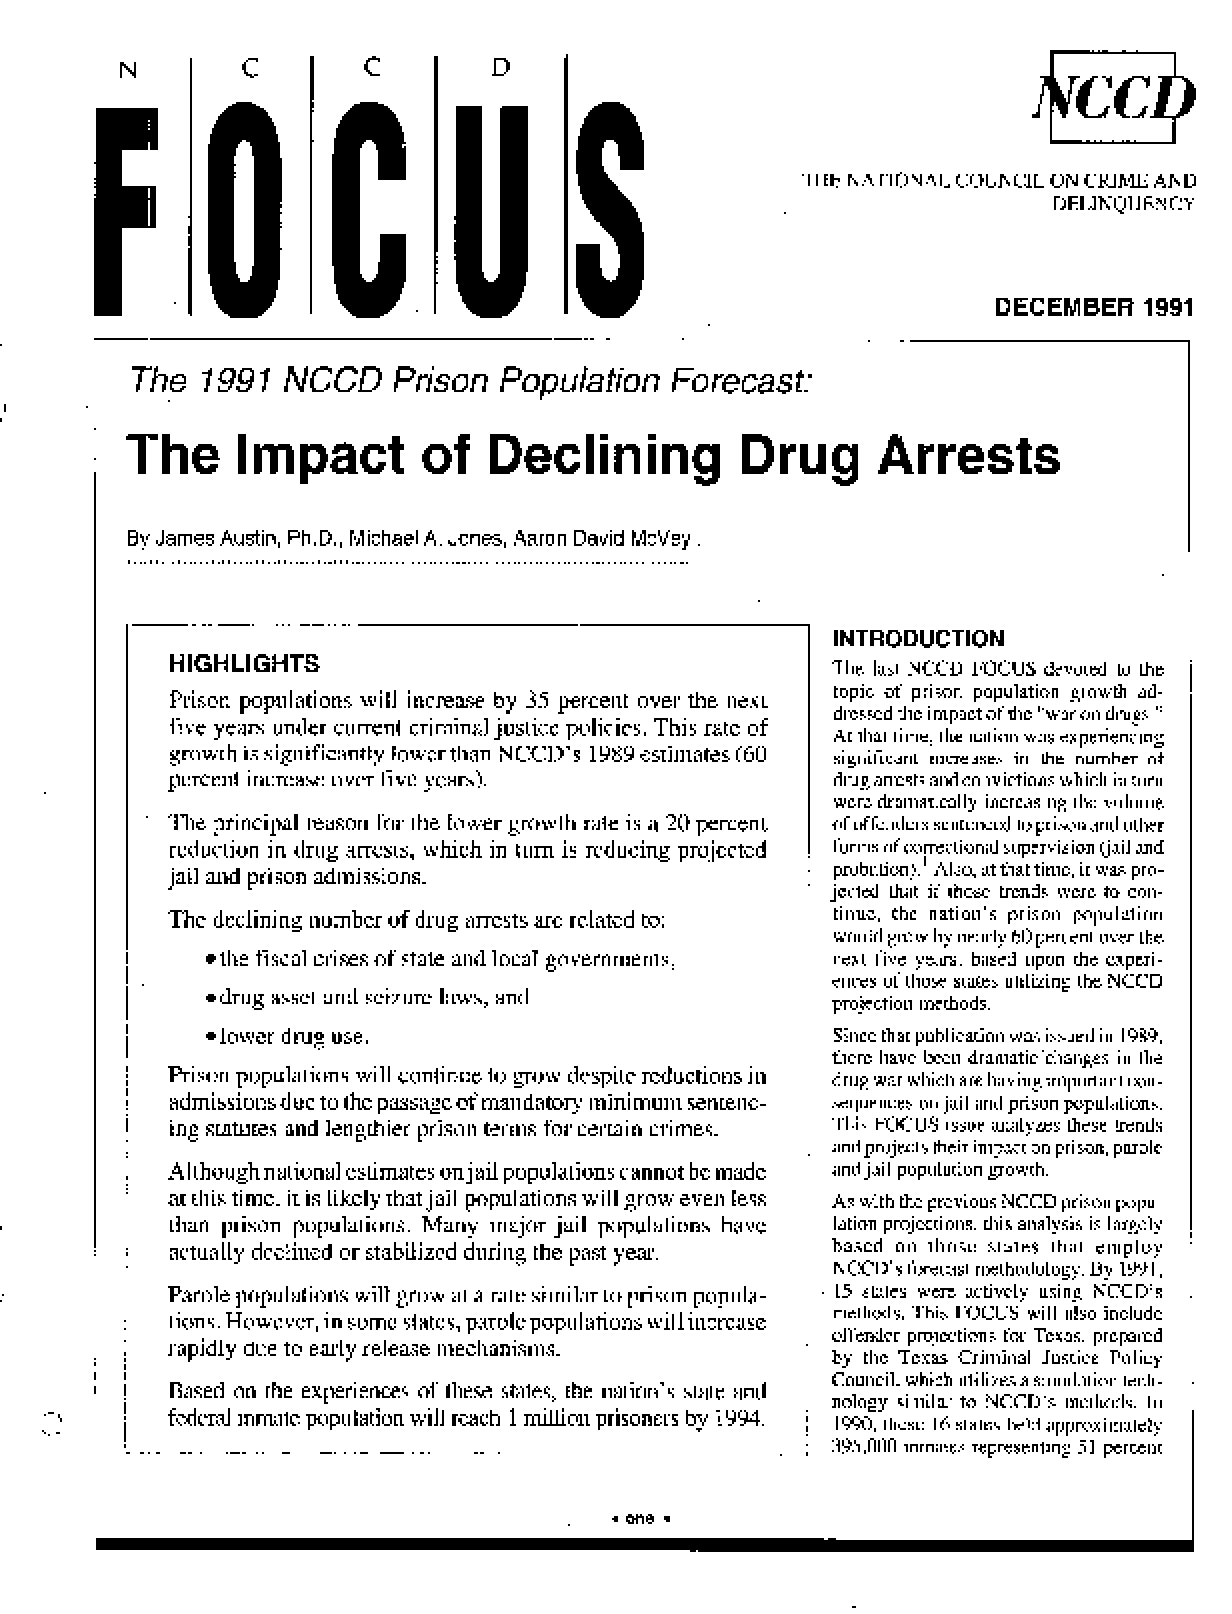 1991 NCCD Prison Population Forecast: The Impact of Declining Drug Arrests (FOCUS)